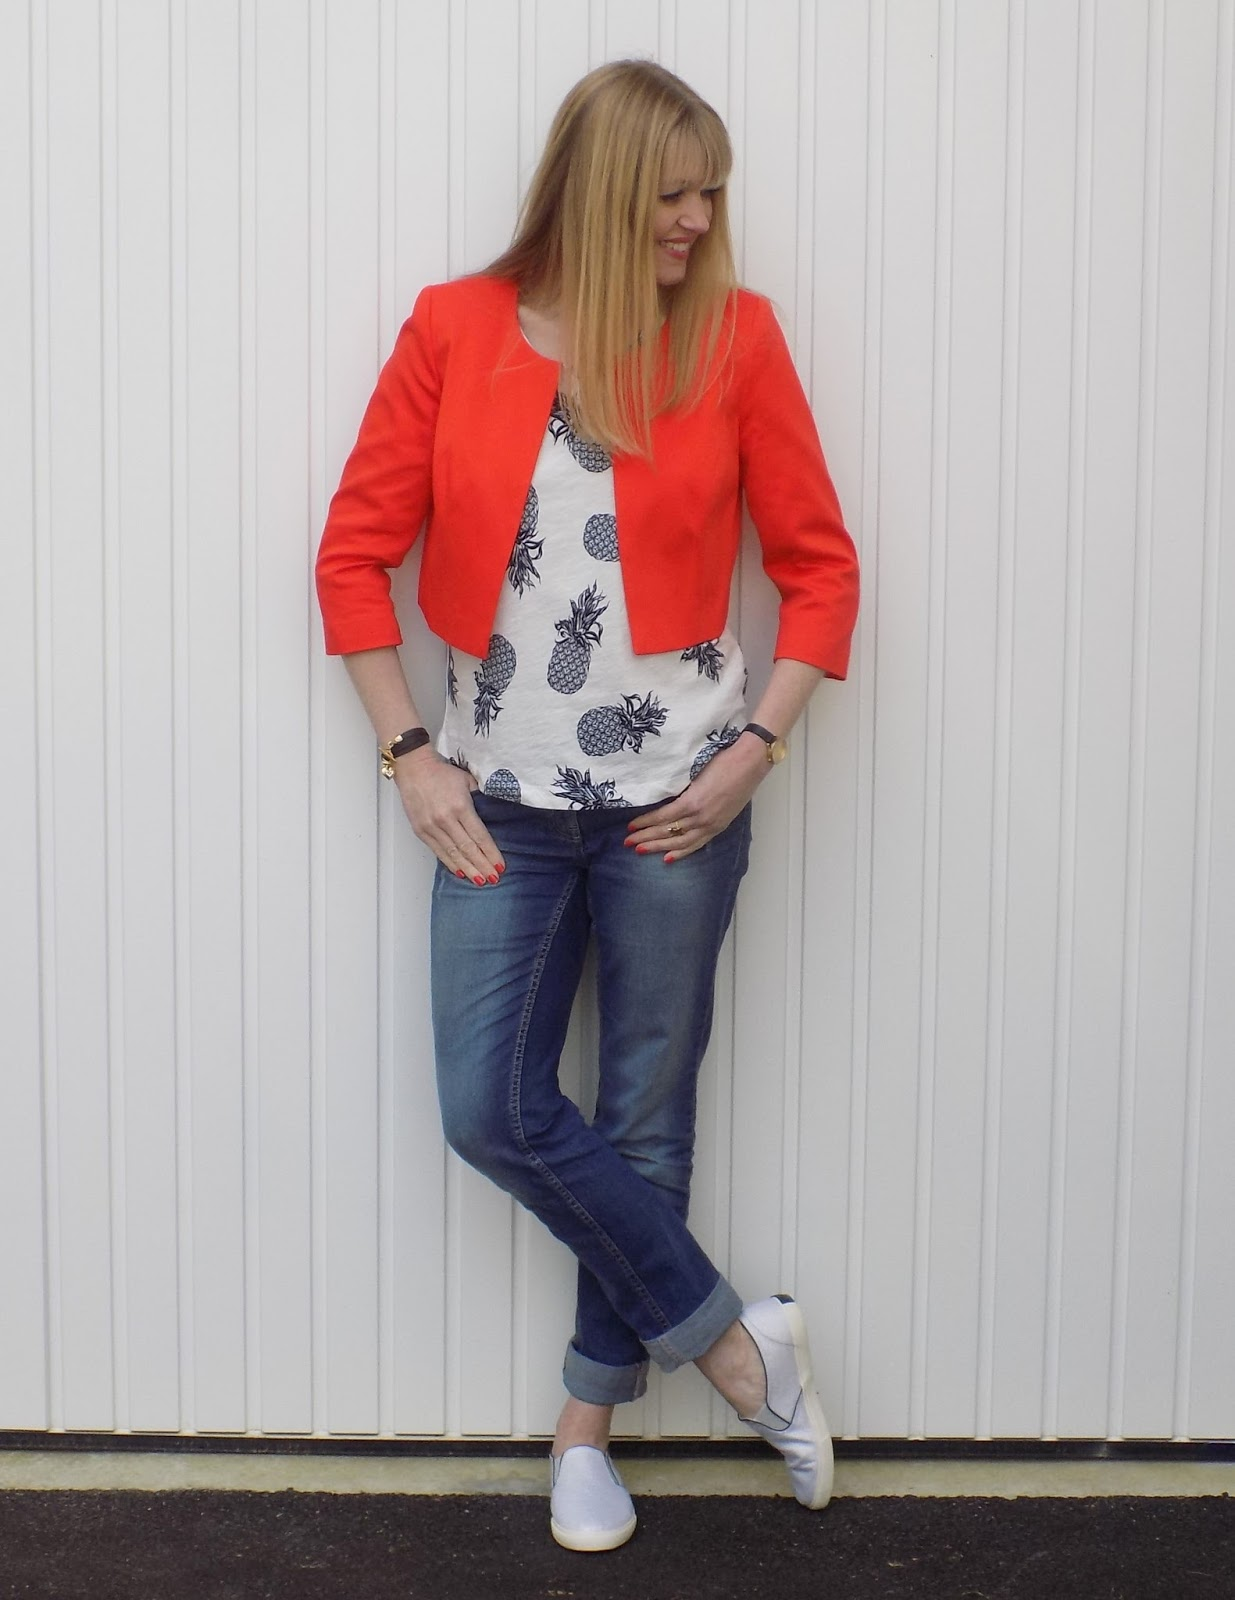 Pineapple top and boyfriend jeans with orange jacket. Redhead wearing orange